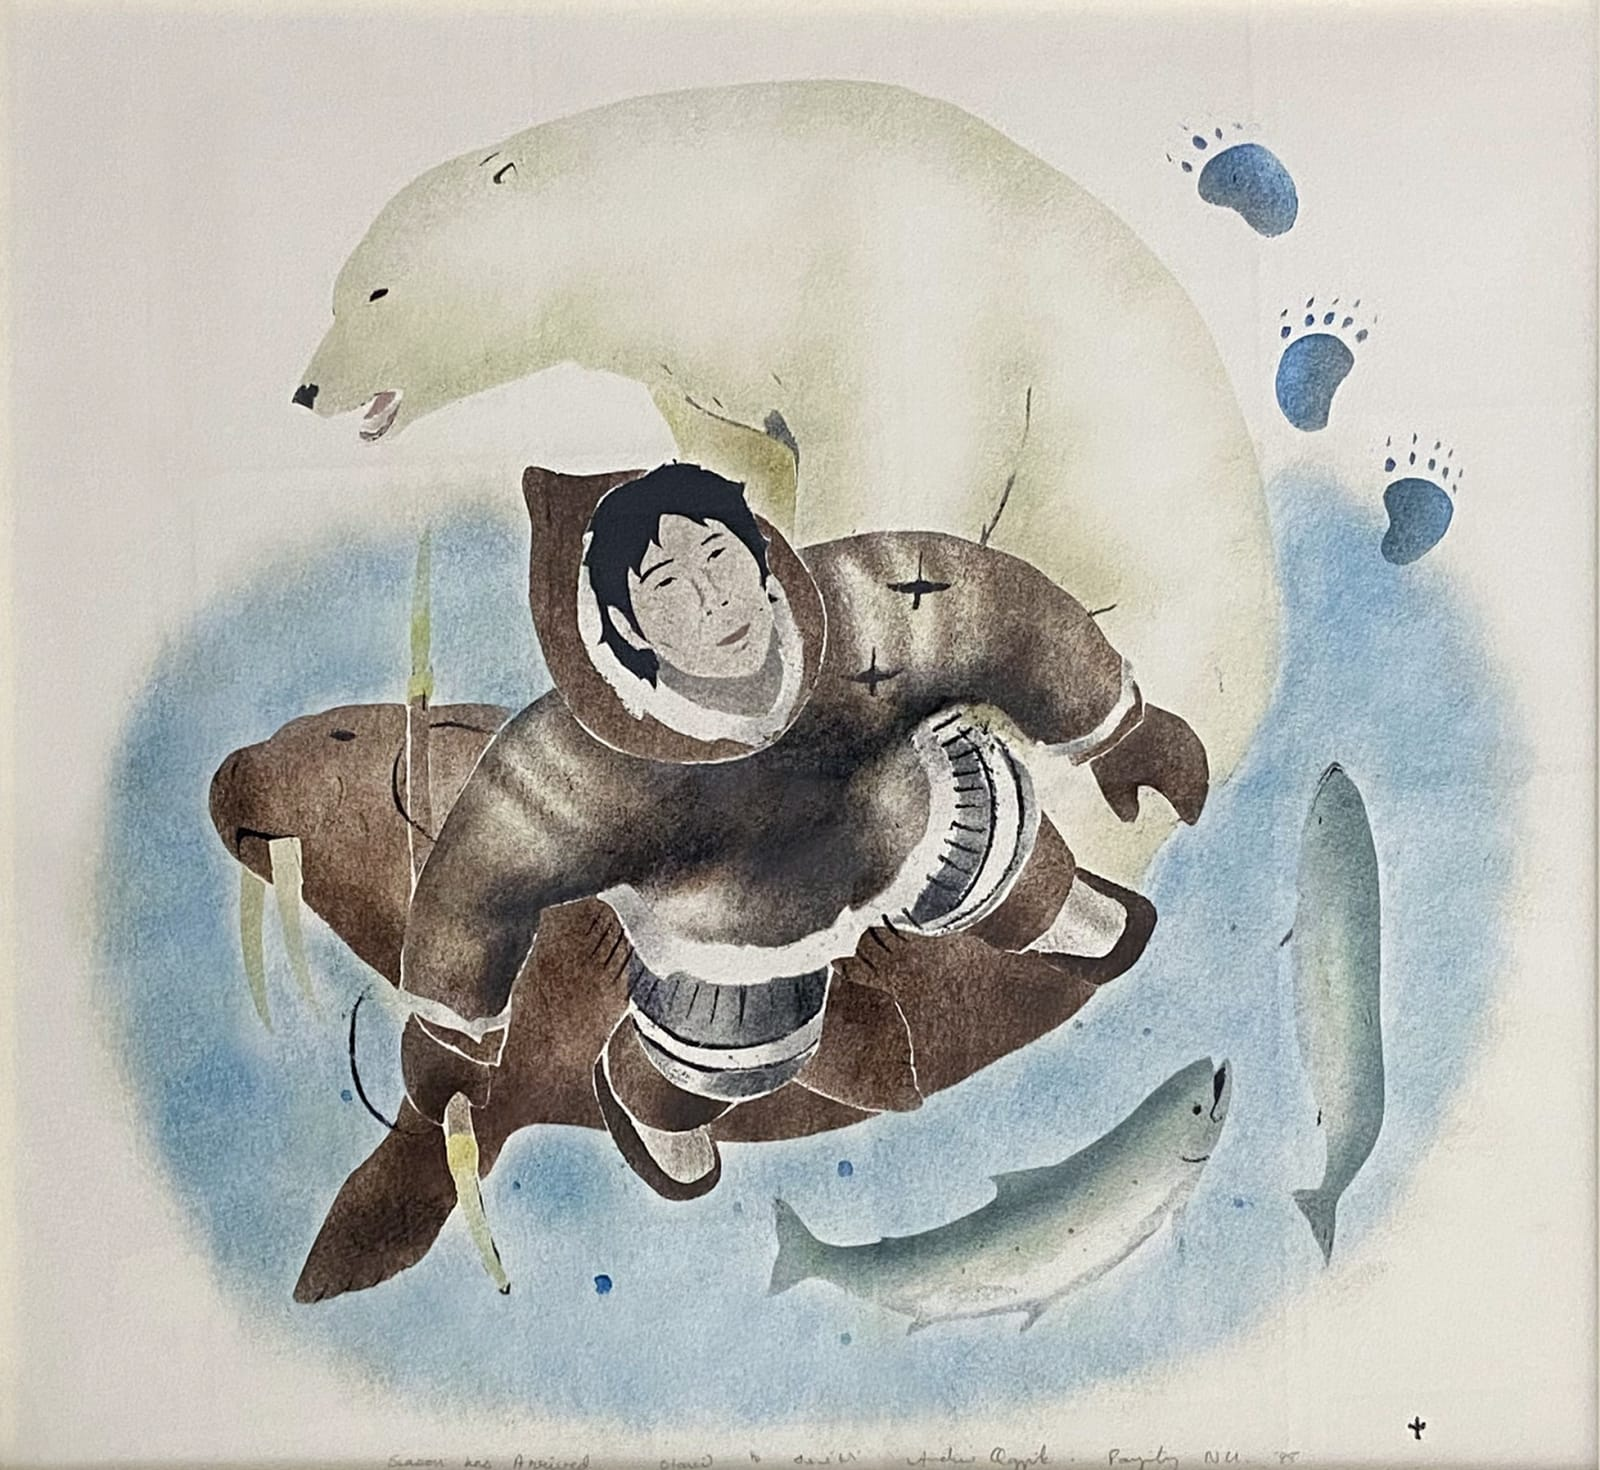 ANDREW QAPPIK (1964-) C.M., PANNIRTUQ (PANGNIRTUNG) Season has Arrived, 1998 stencil, framed, sight: 21 x 19 in (53.3 x 48.3 cm) ESTIMATE: $400 — $600 New Price: $300